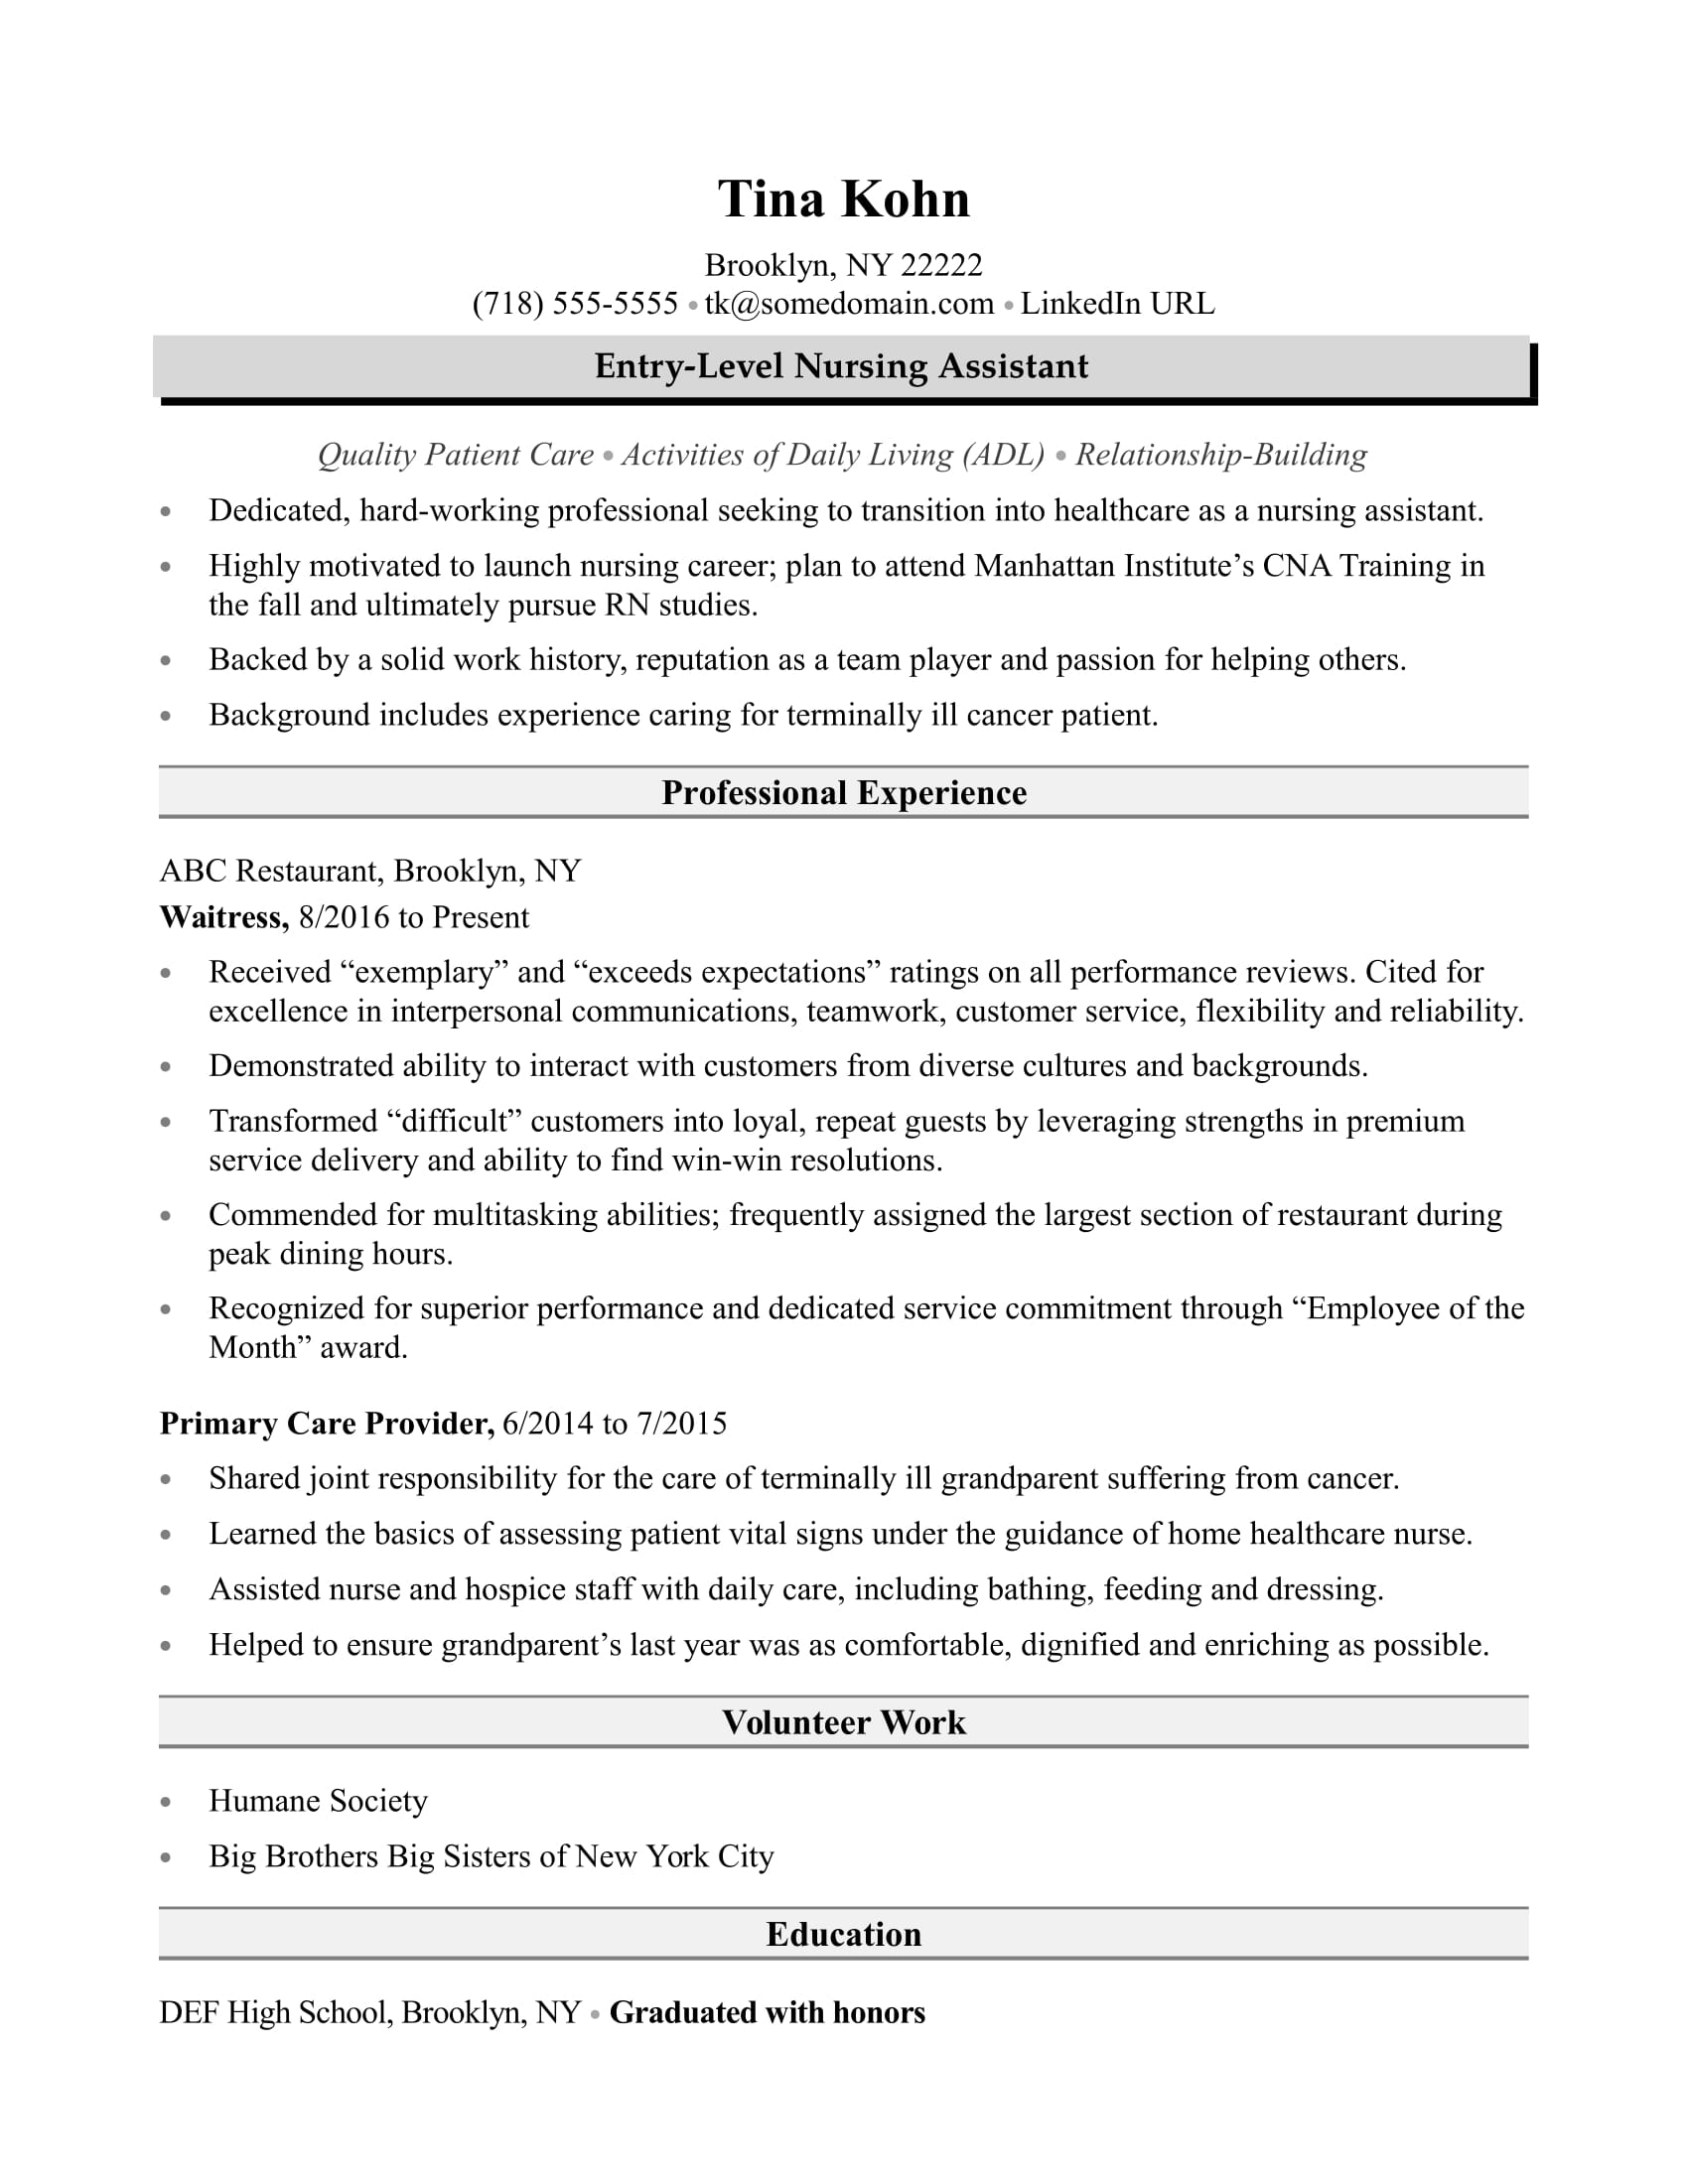 Job Entry Description Resume Level Registered Nurse